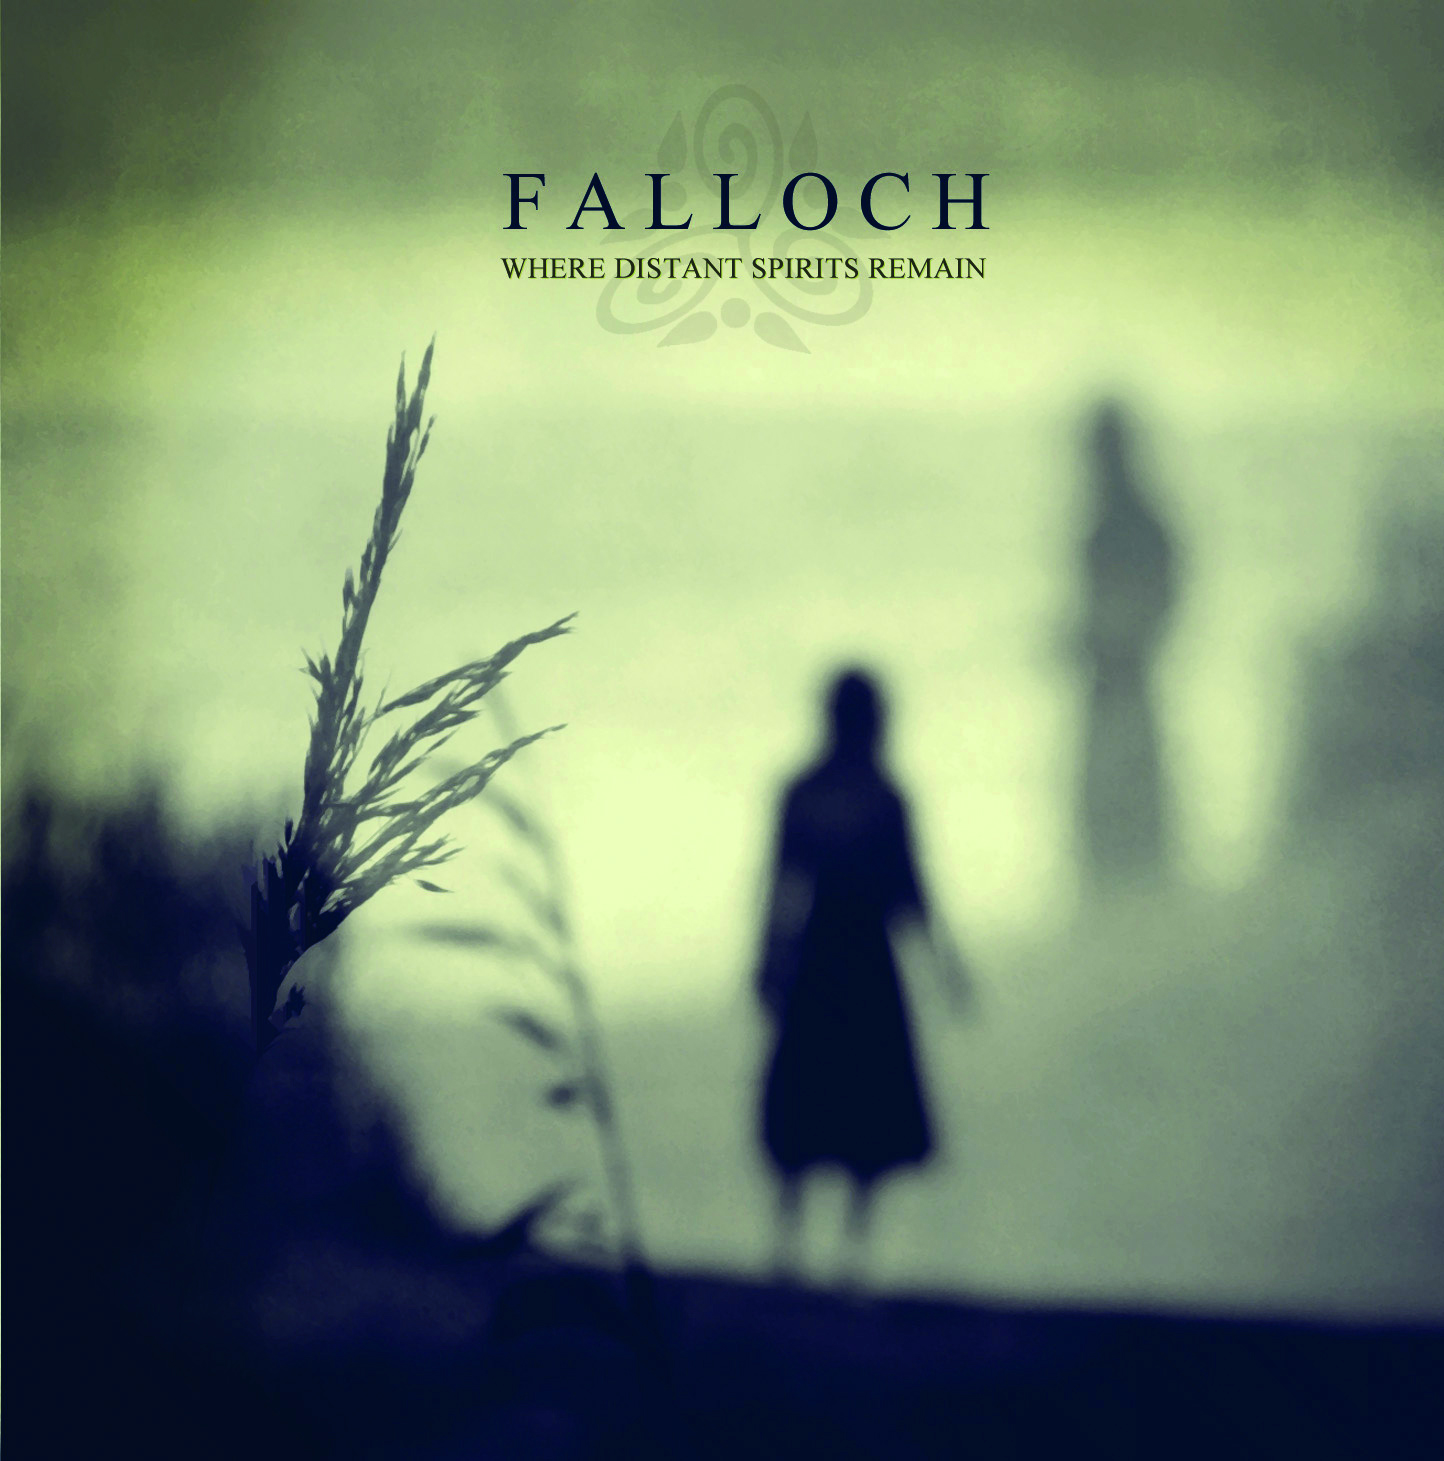 Falloch Where Distant Spirits Remain Artwork